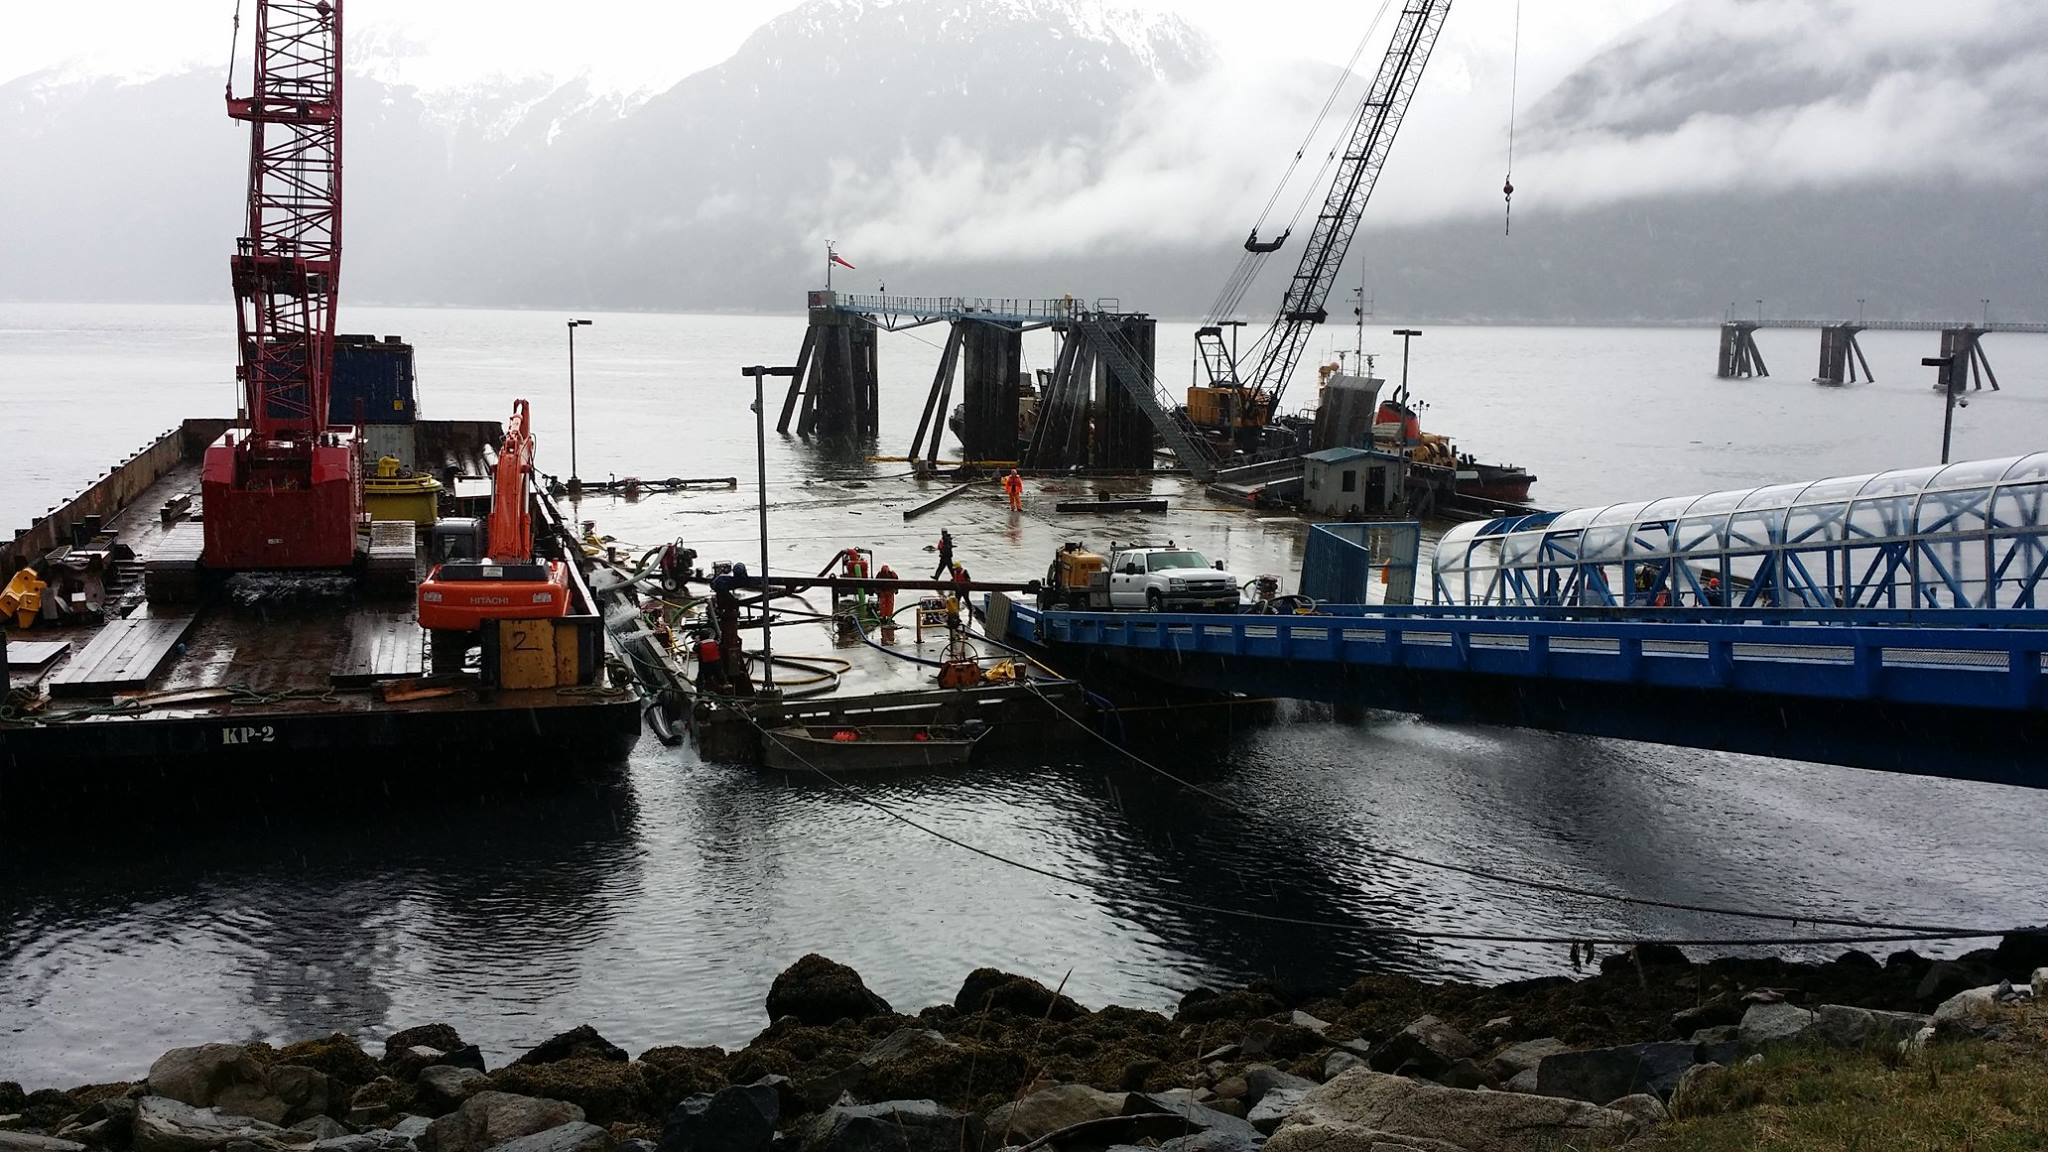 Western Marine Construction began working early Tuesday to refloat the dock. (Photo courtesy Jeremy Stephens, Alaska DOT&PF)